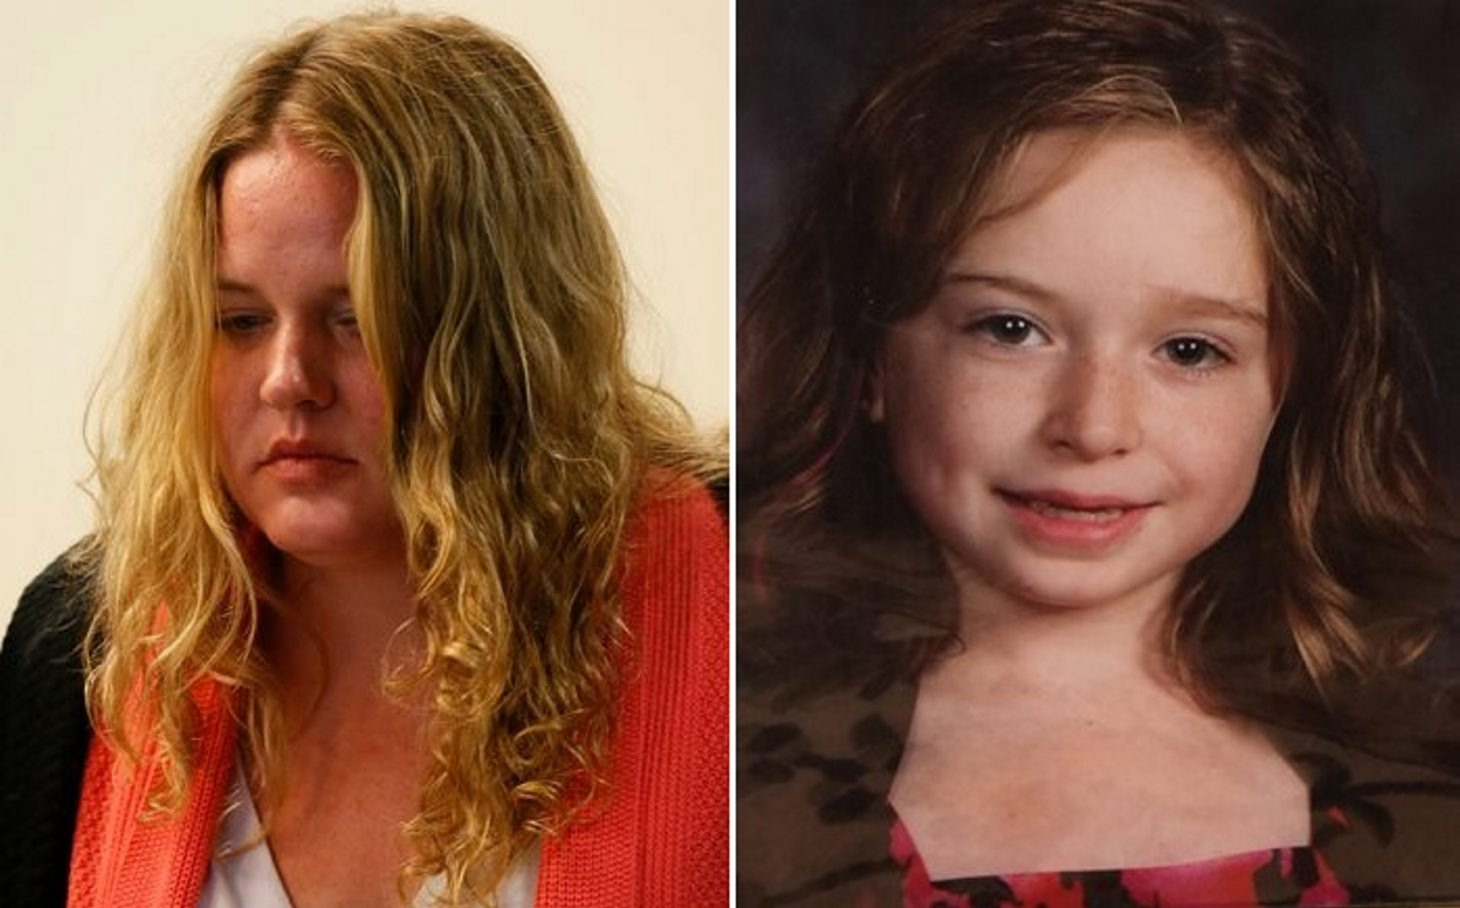 Candace Cartagena will be sentenced today  in the death of her daughter, Bianca. She was convicted of second-degree murder on July 21